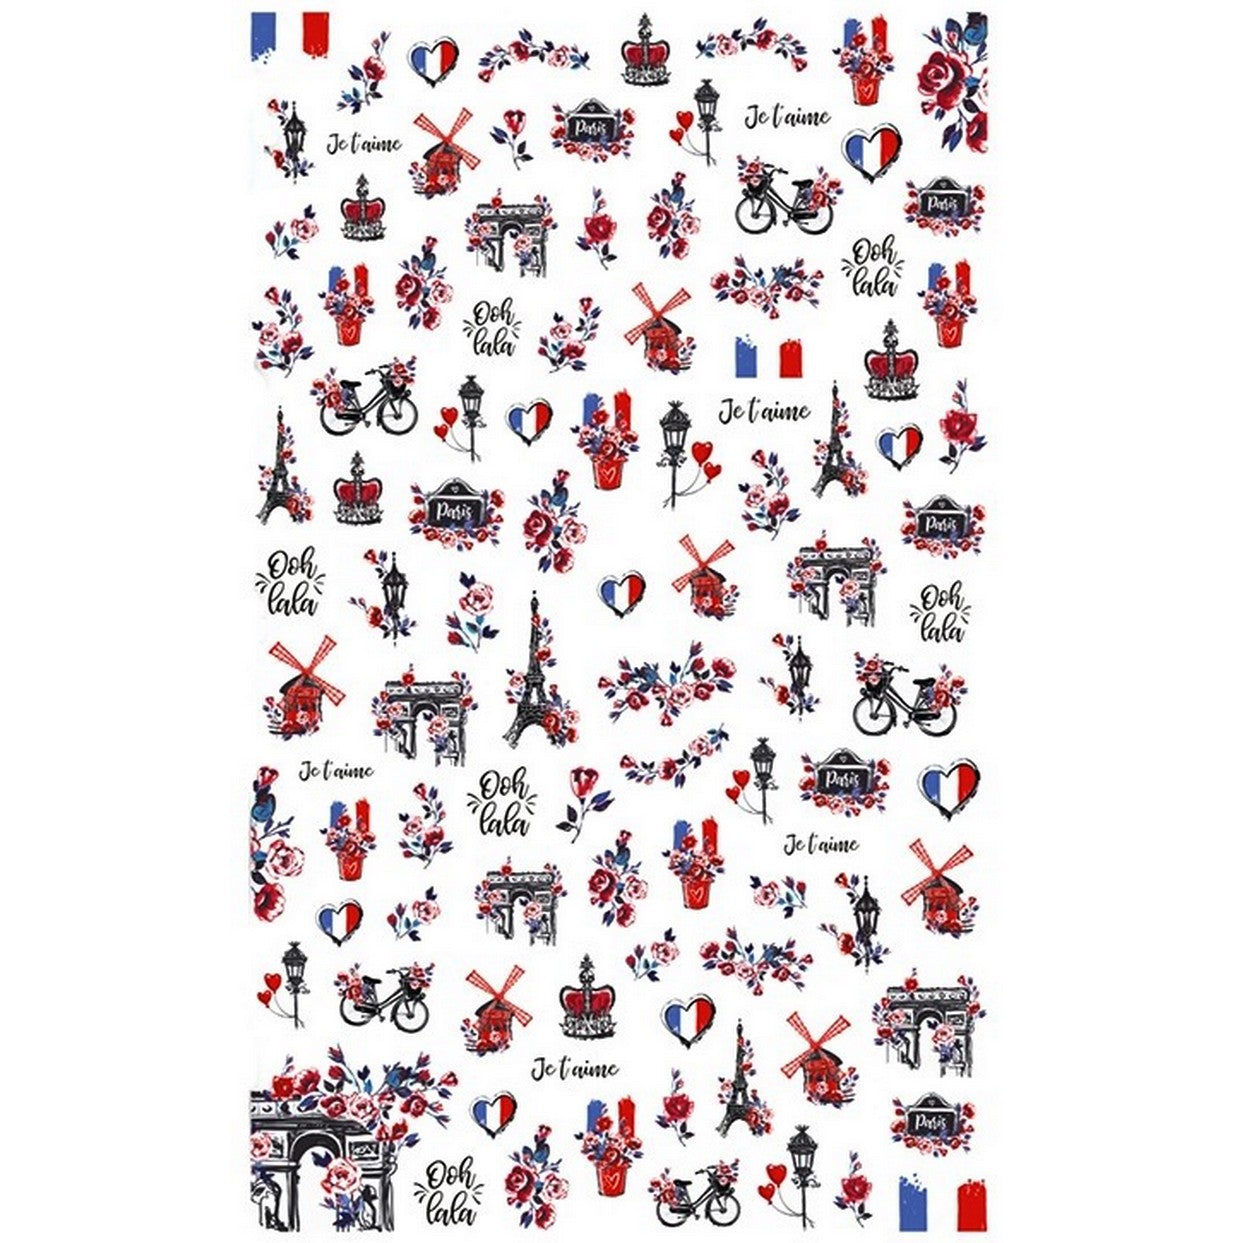 Travels Paris Ooh Lala Nail Stickers